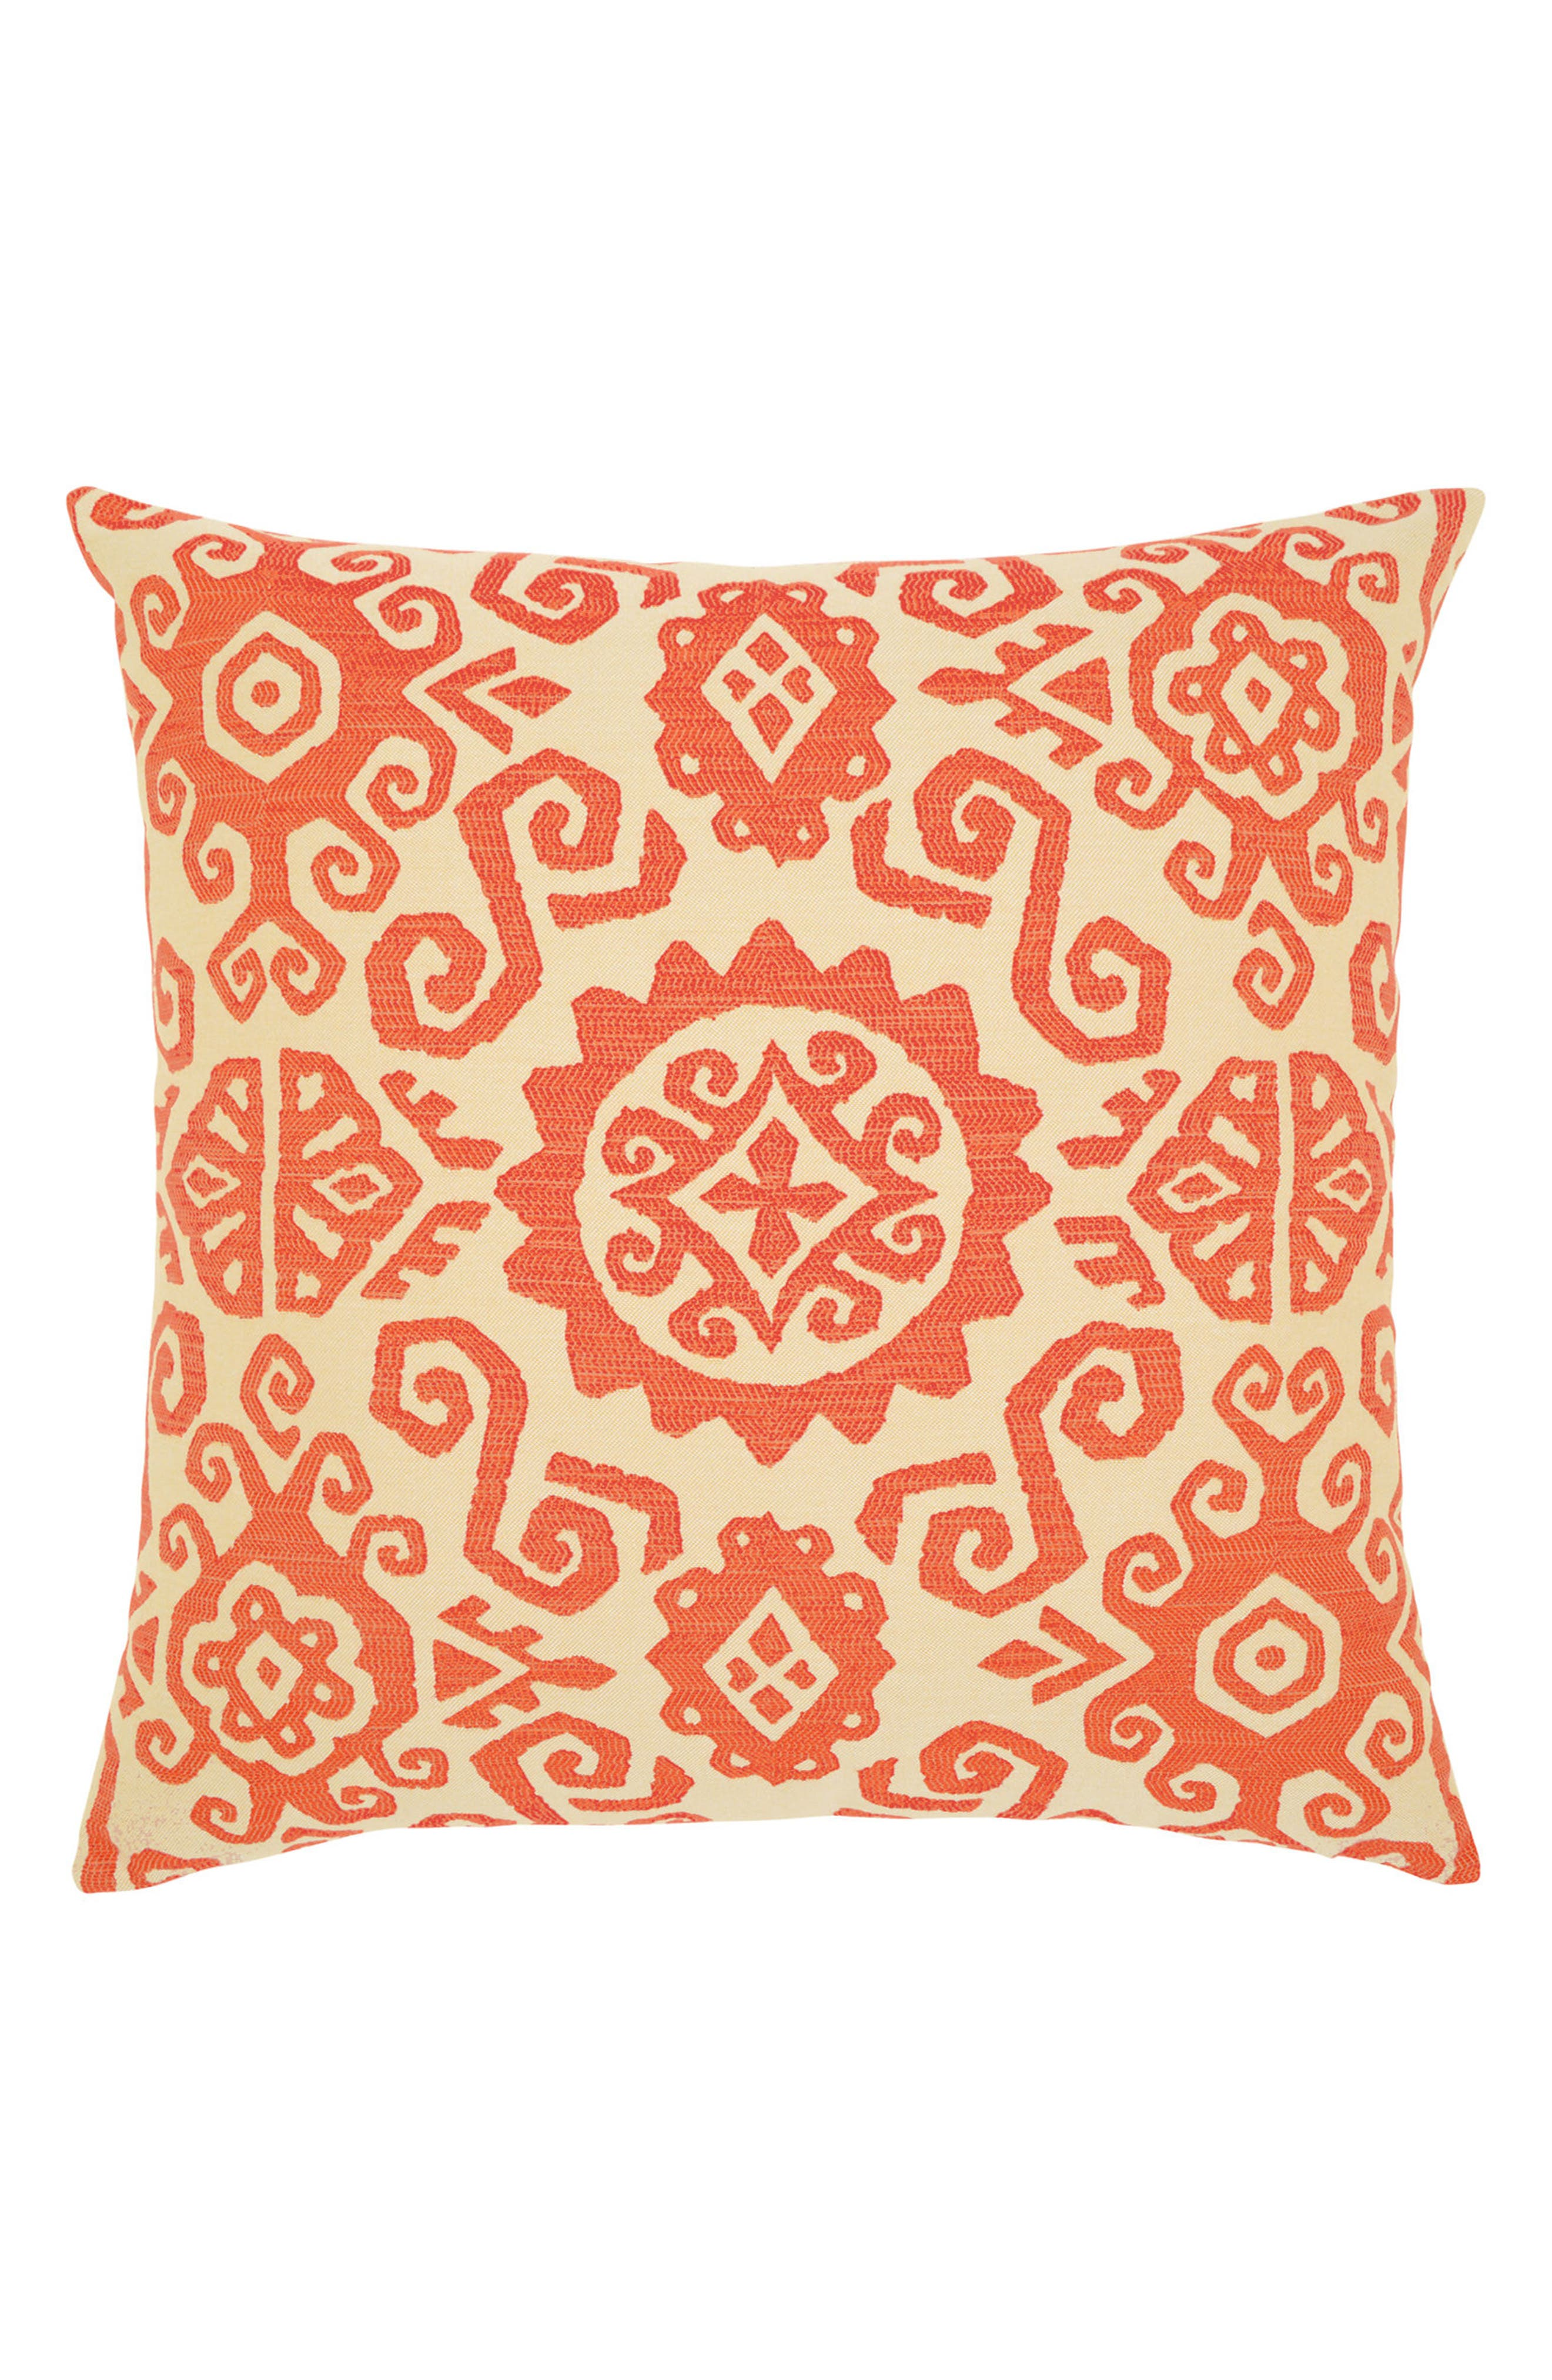 Coral Sun Indoor/Outdoor Accent Pillow,                         Main,                         color, Orange